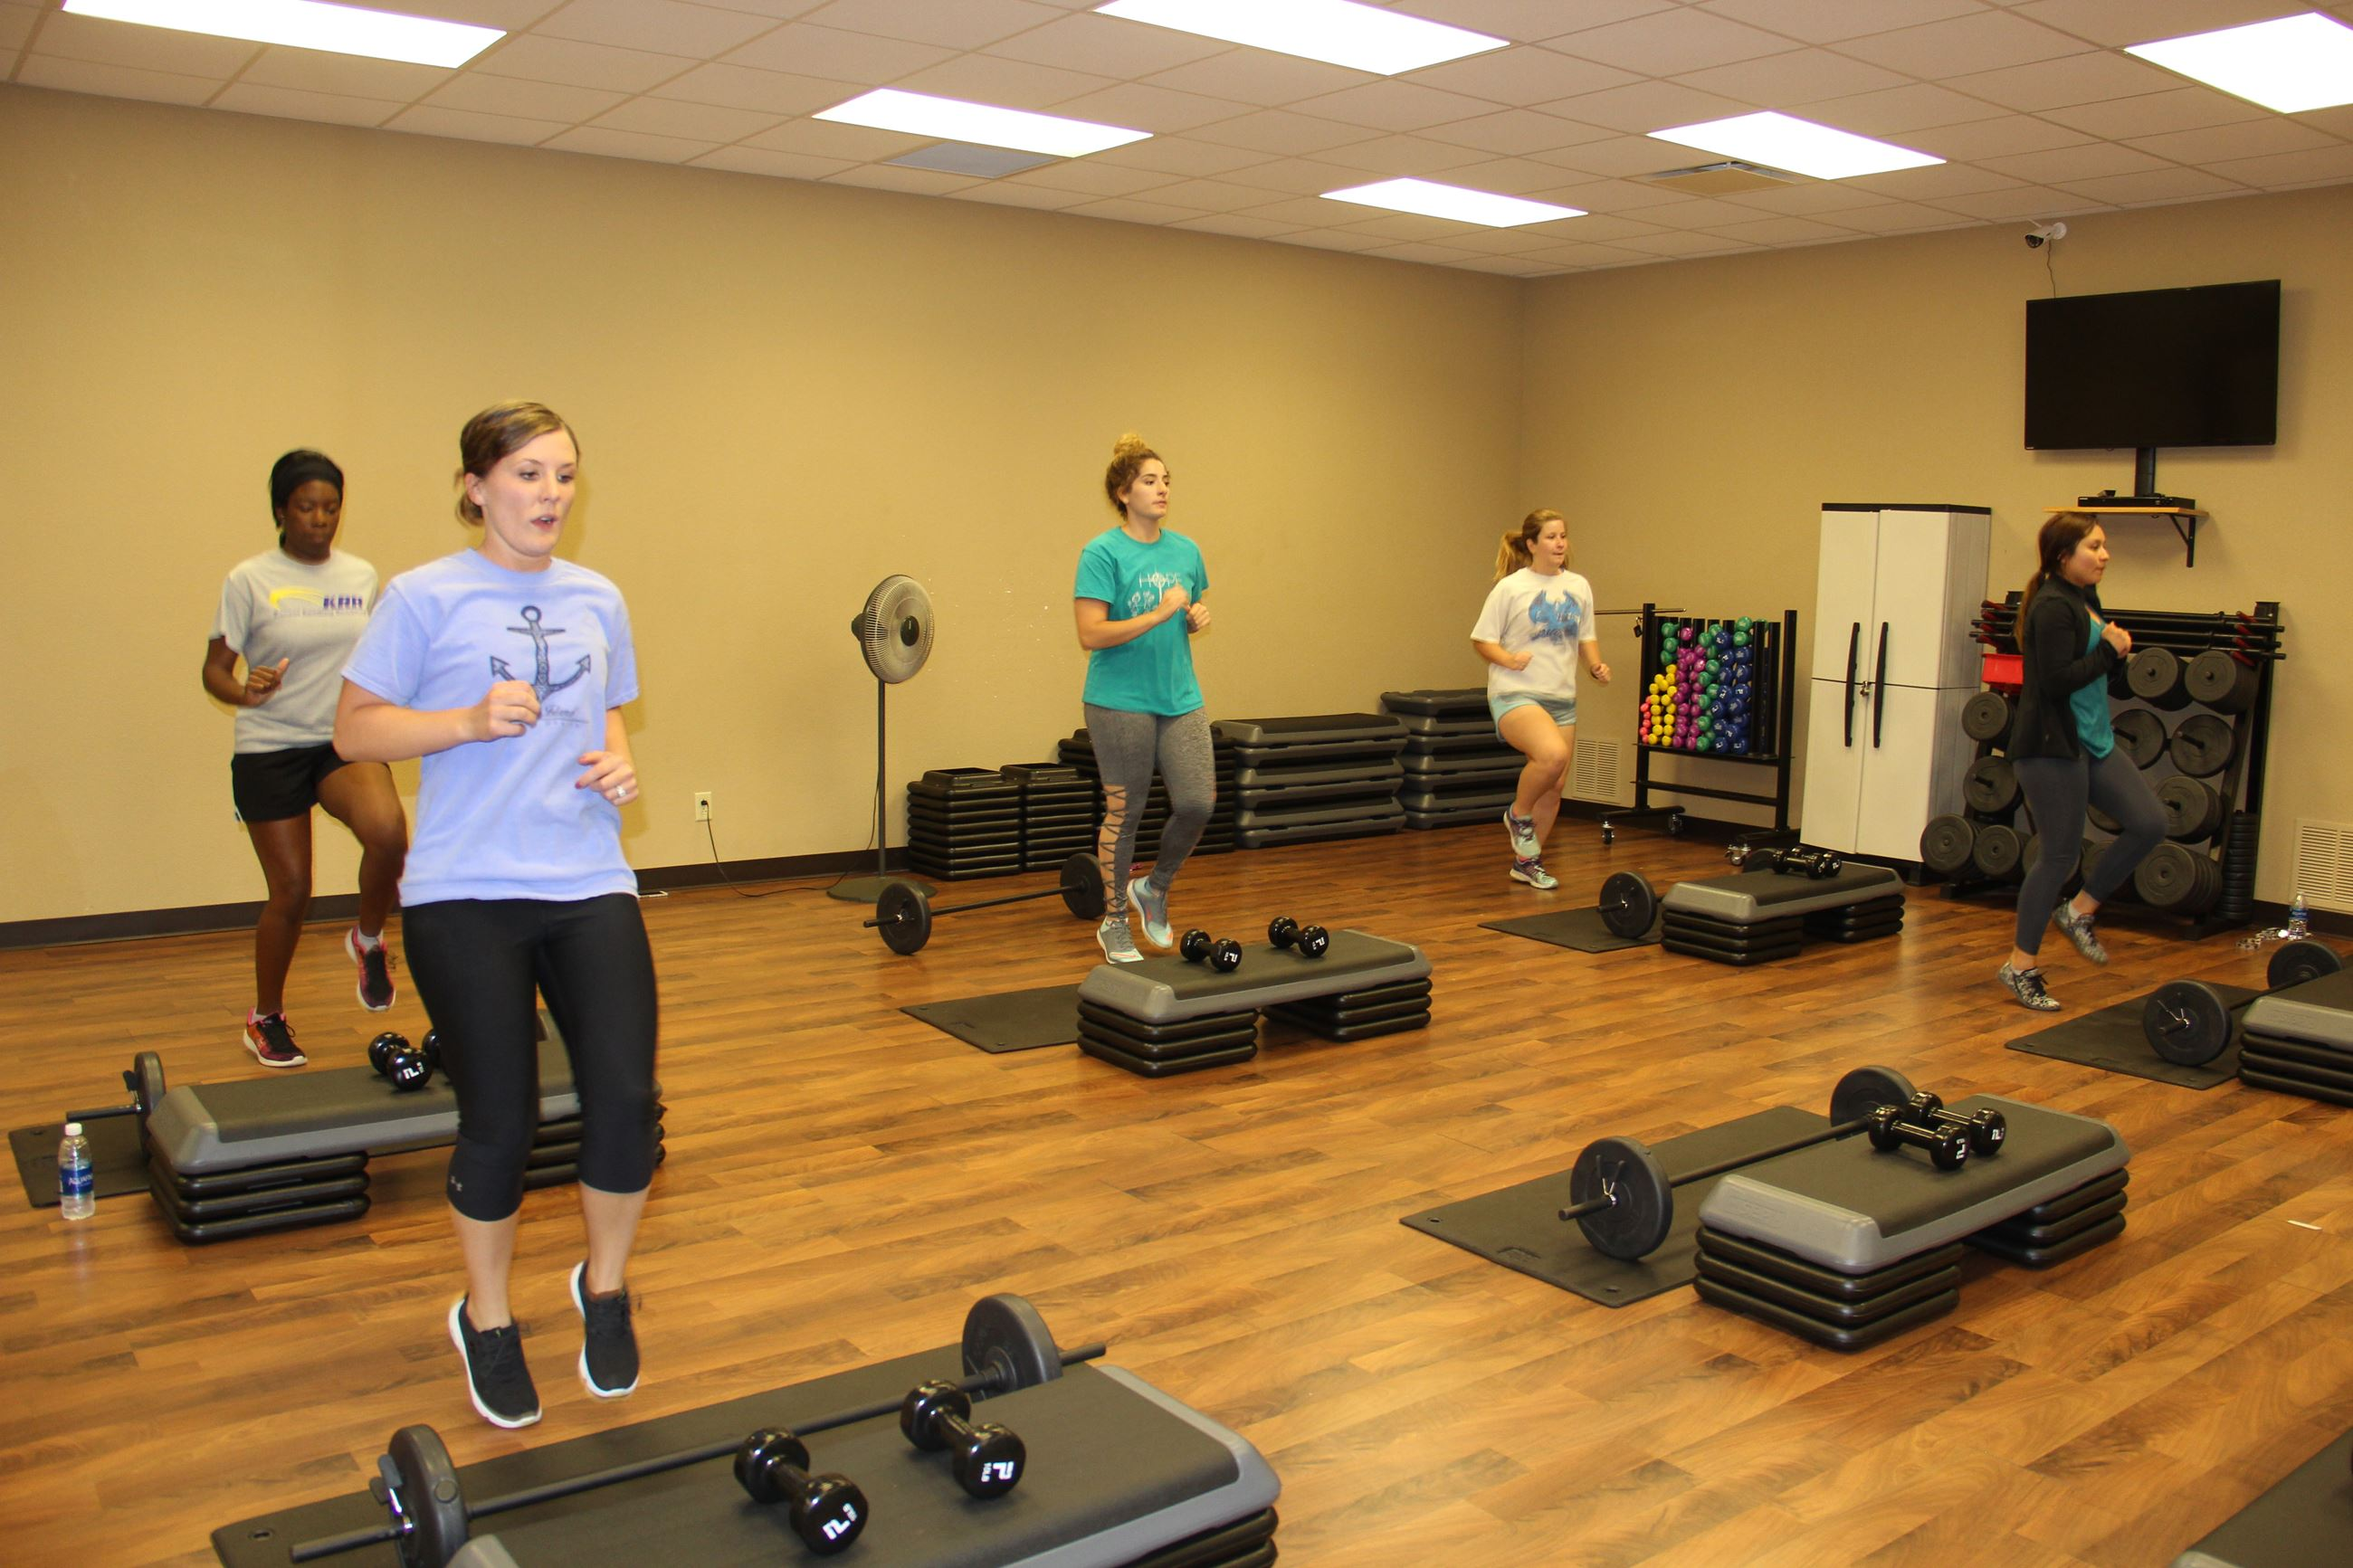 Women in the Rockbottom Workout class